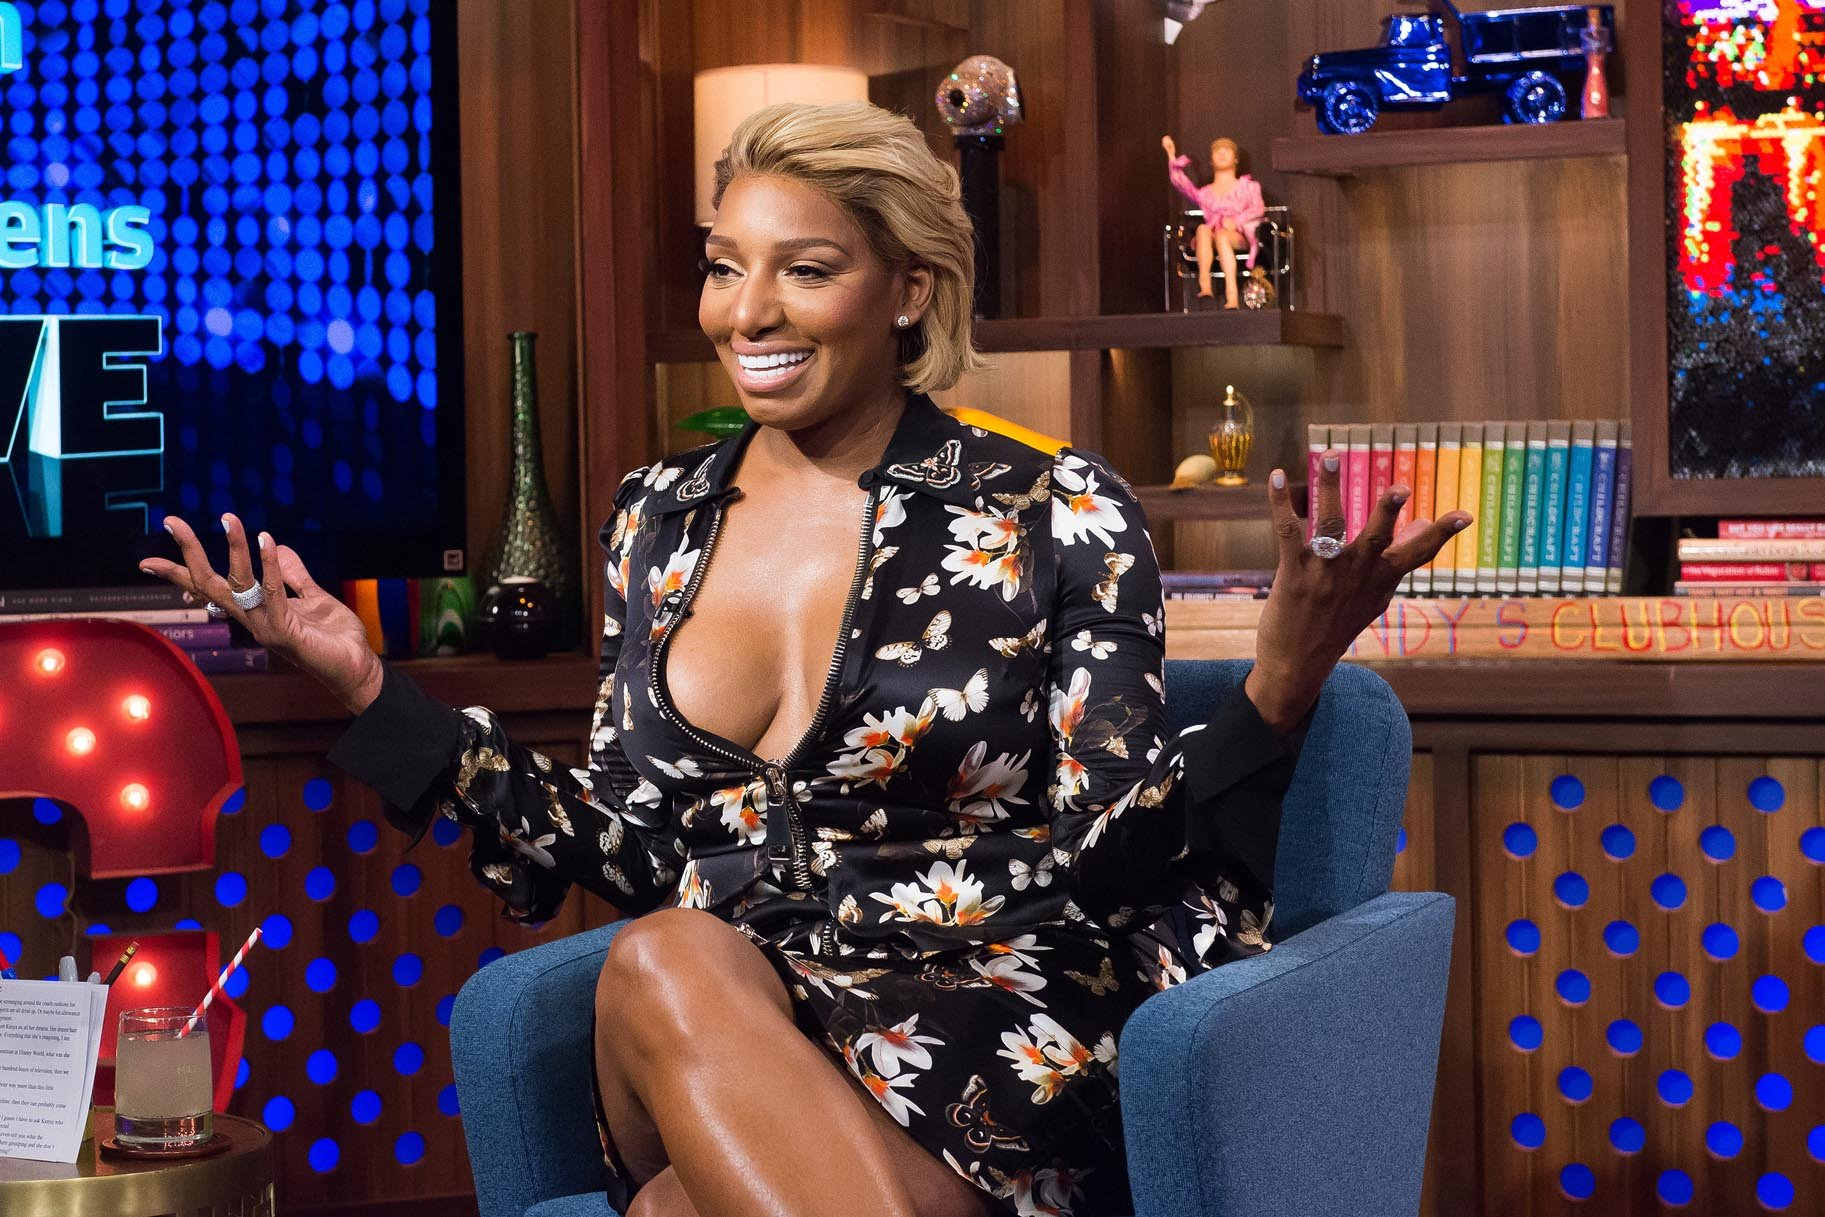 Nene Leakes Explains How Differently She Has Been Treated Than Her White Counterparts